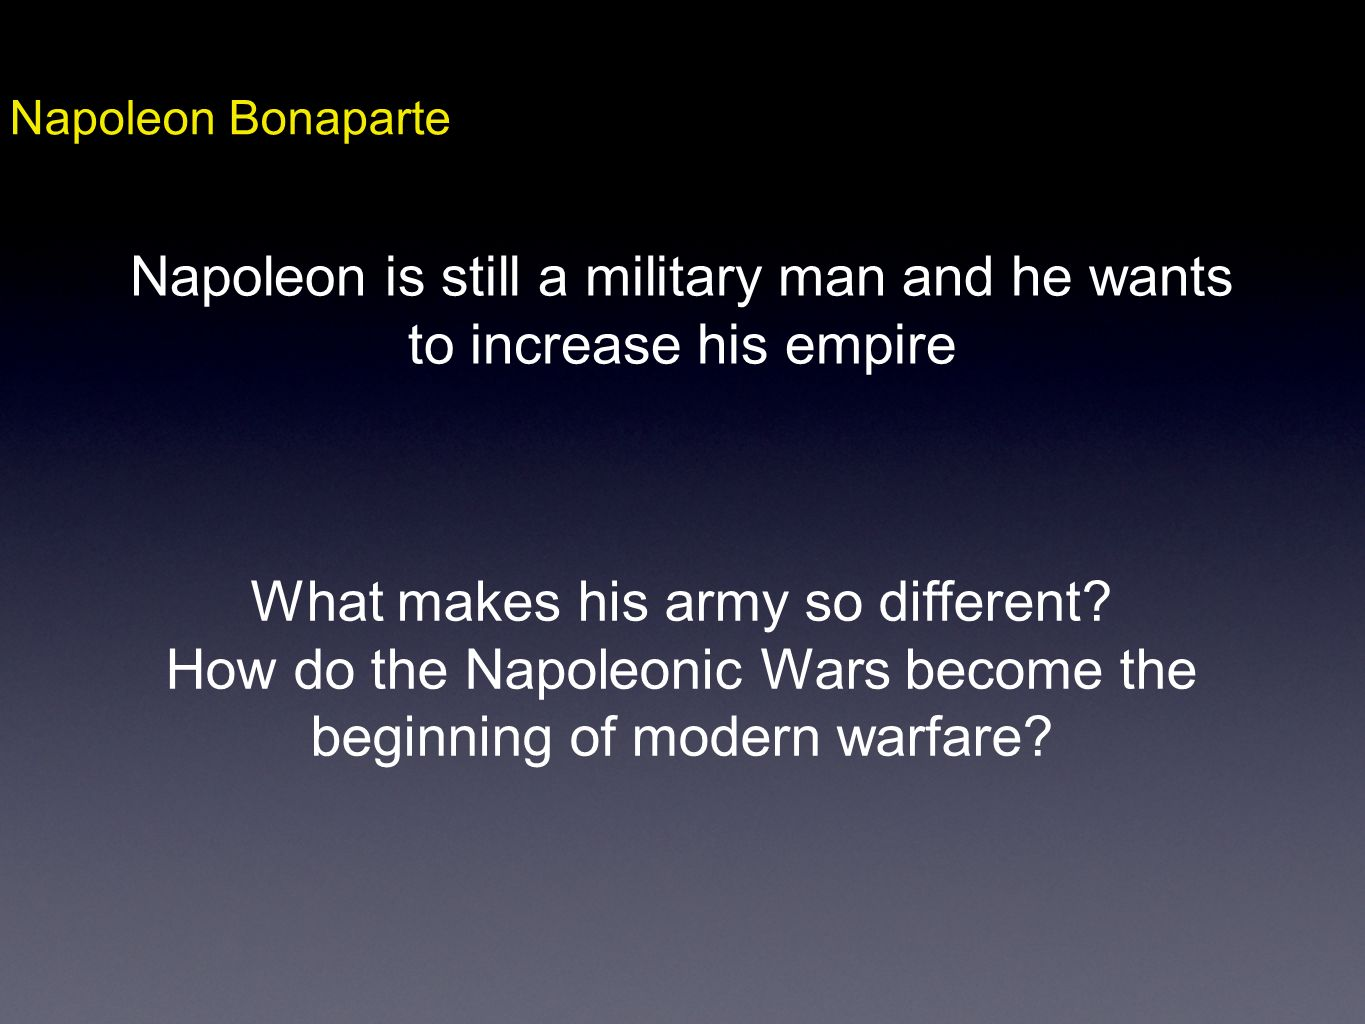 Napoleon is still a military man and he wants to increase his empire